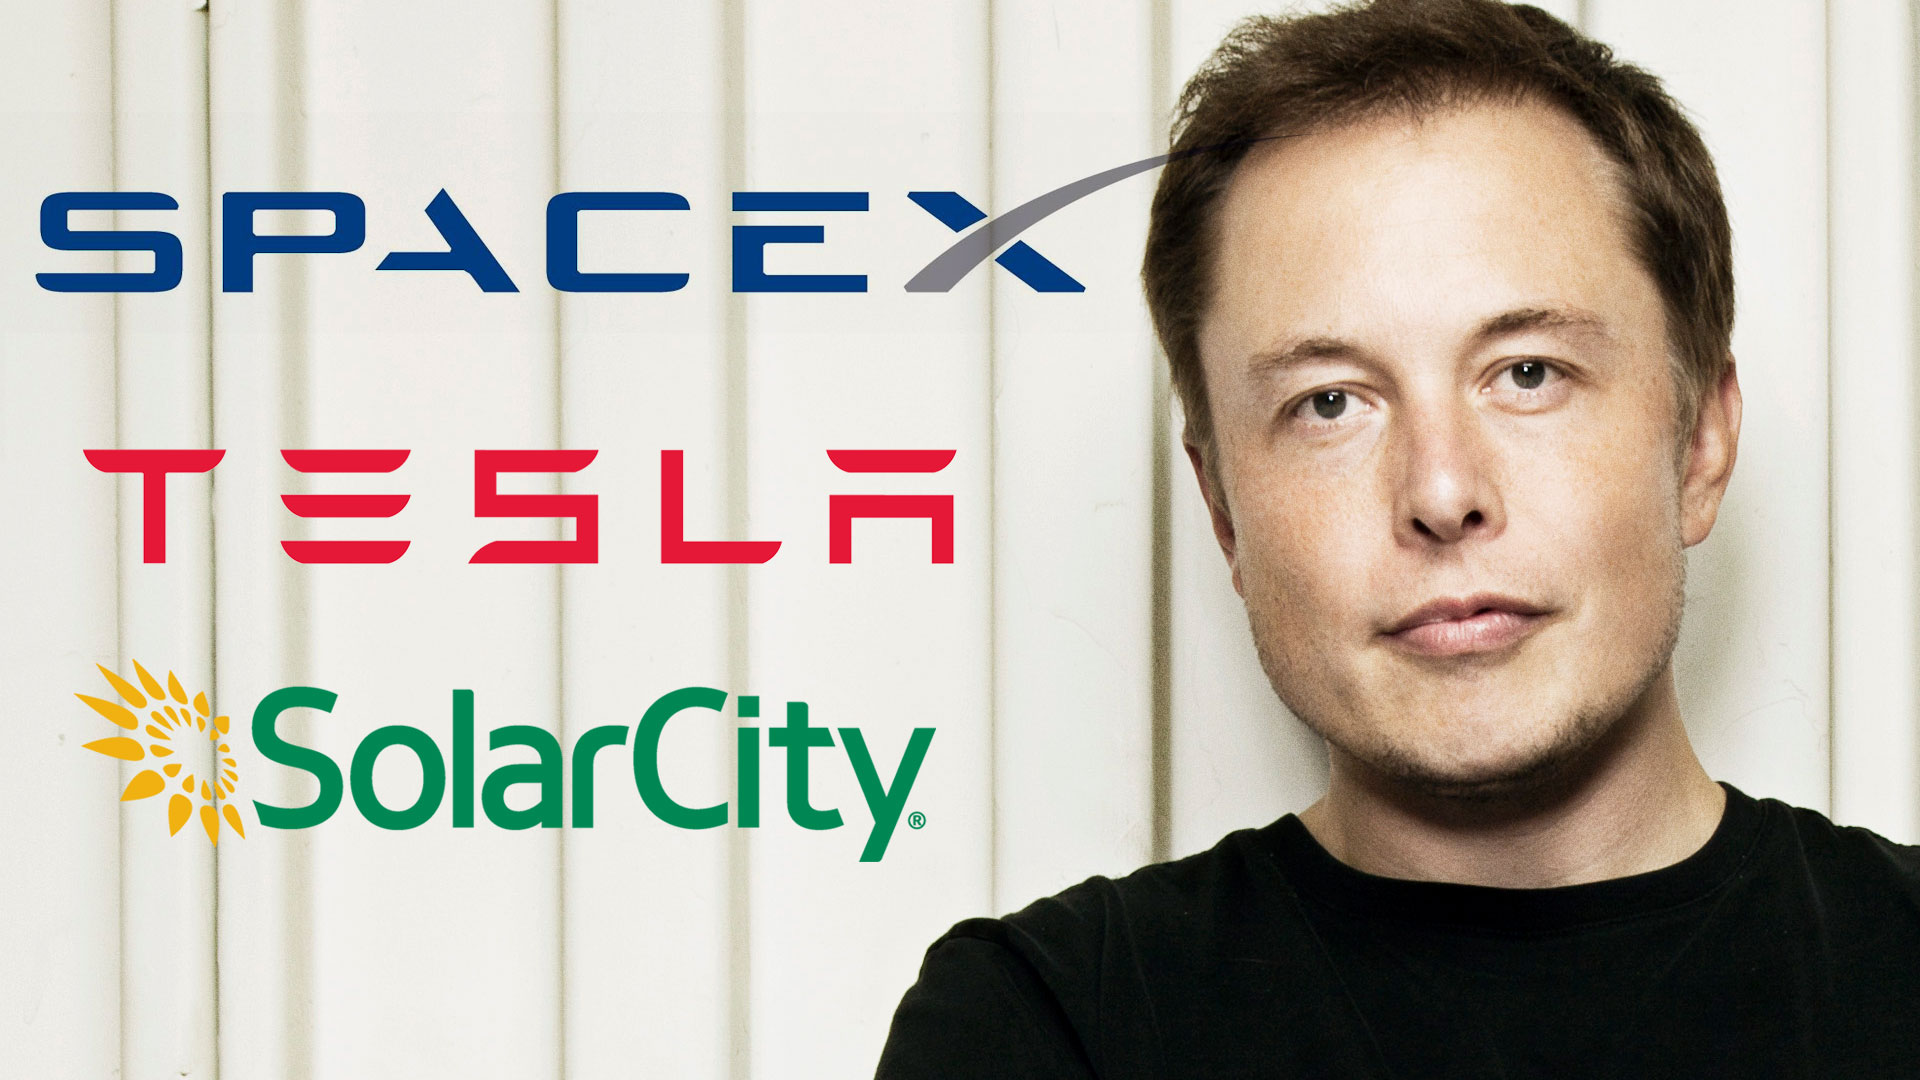 elon musk net worth 2018 see how rich he is now gazette review elon musk net worth 2018 see how rich